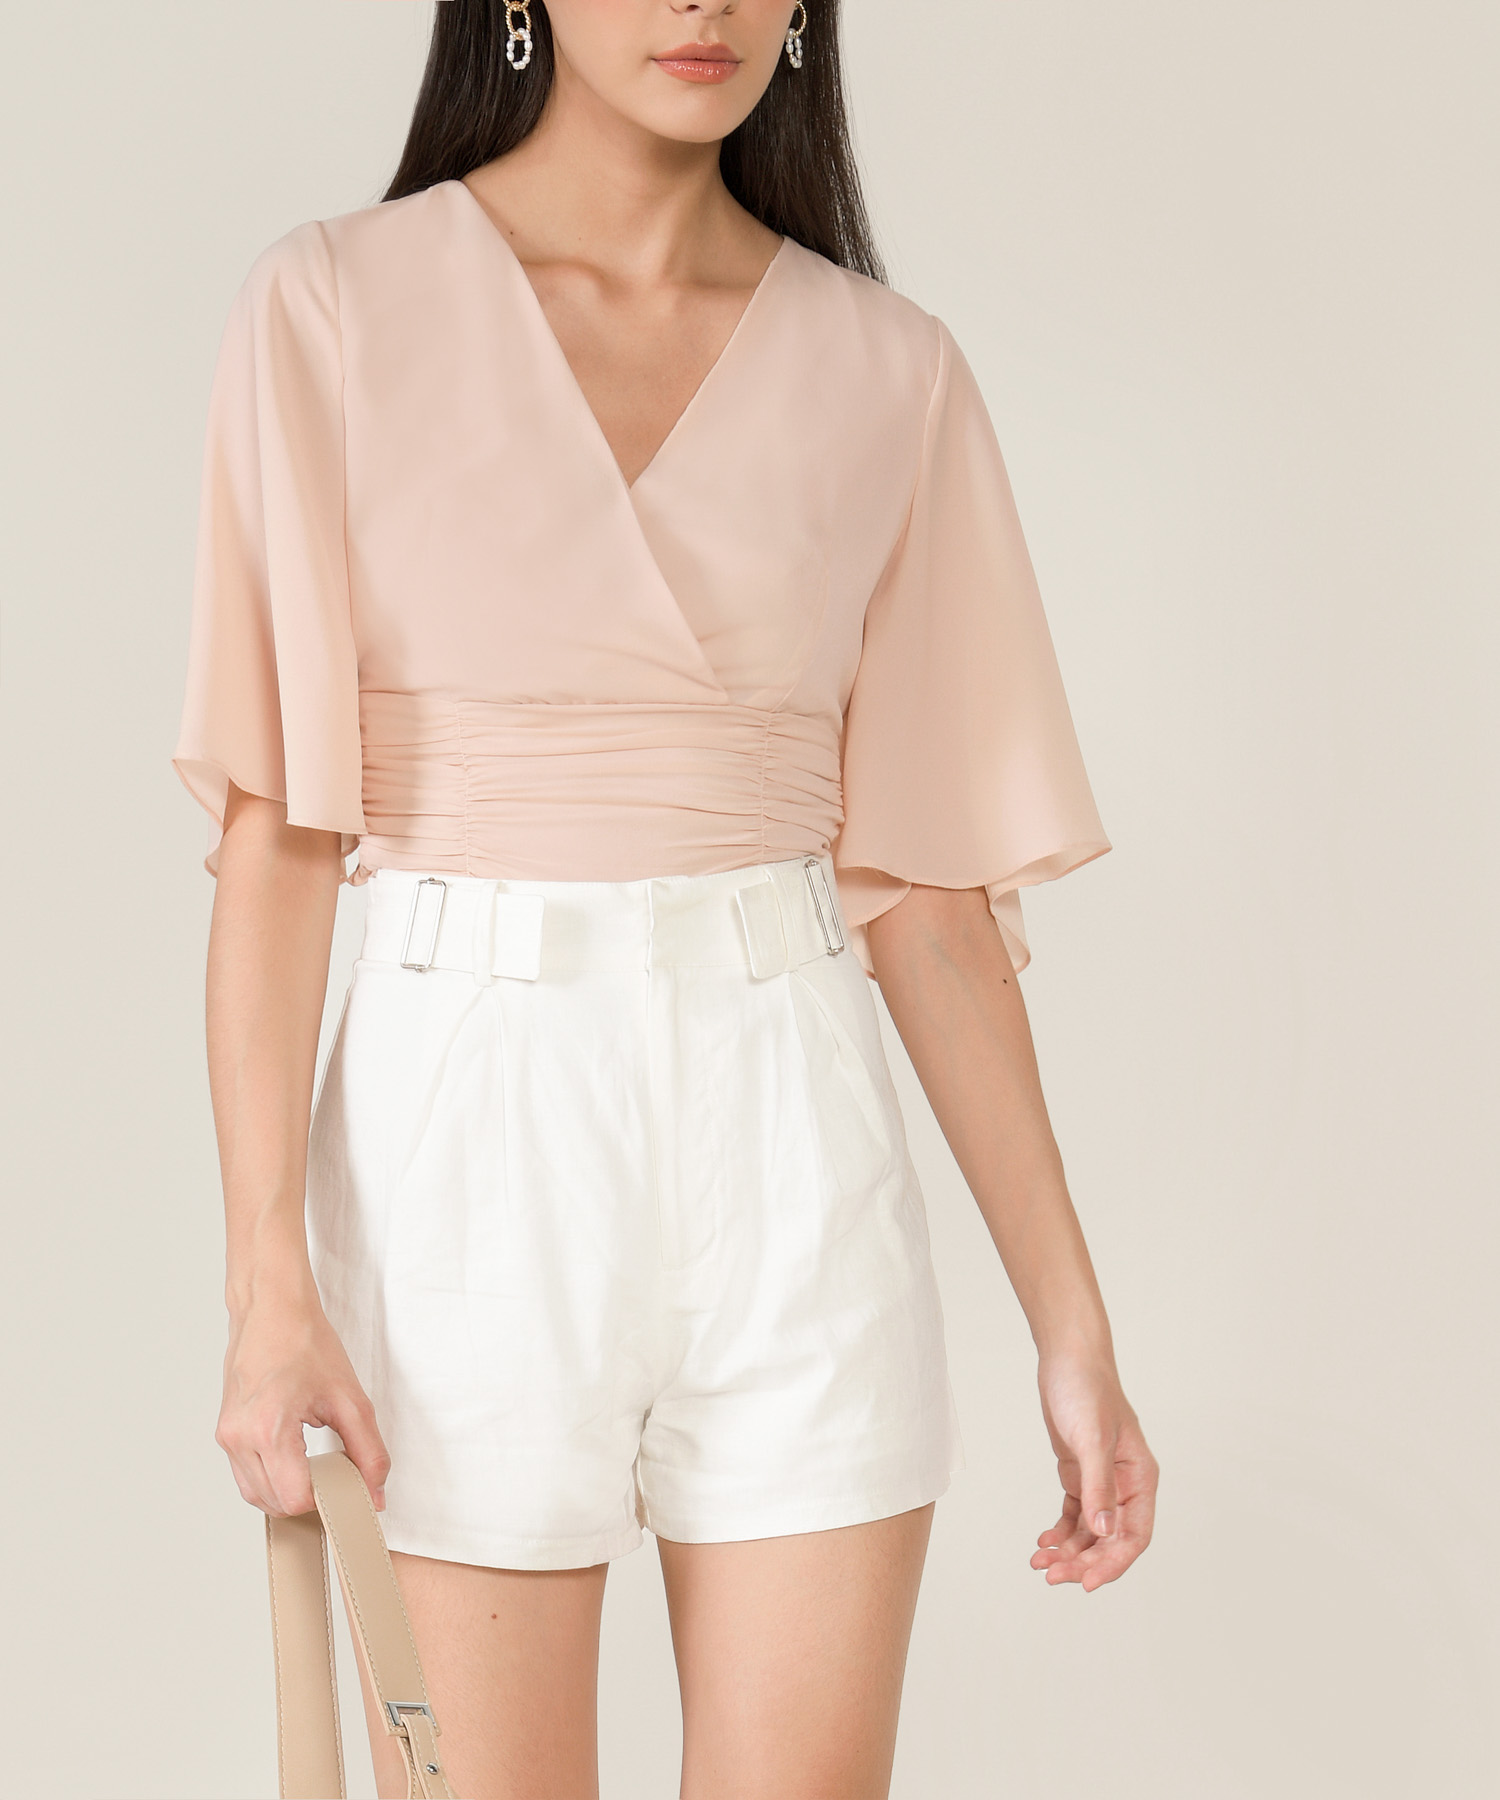 thalia-ruched-cropped-top-blush-1